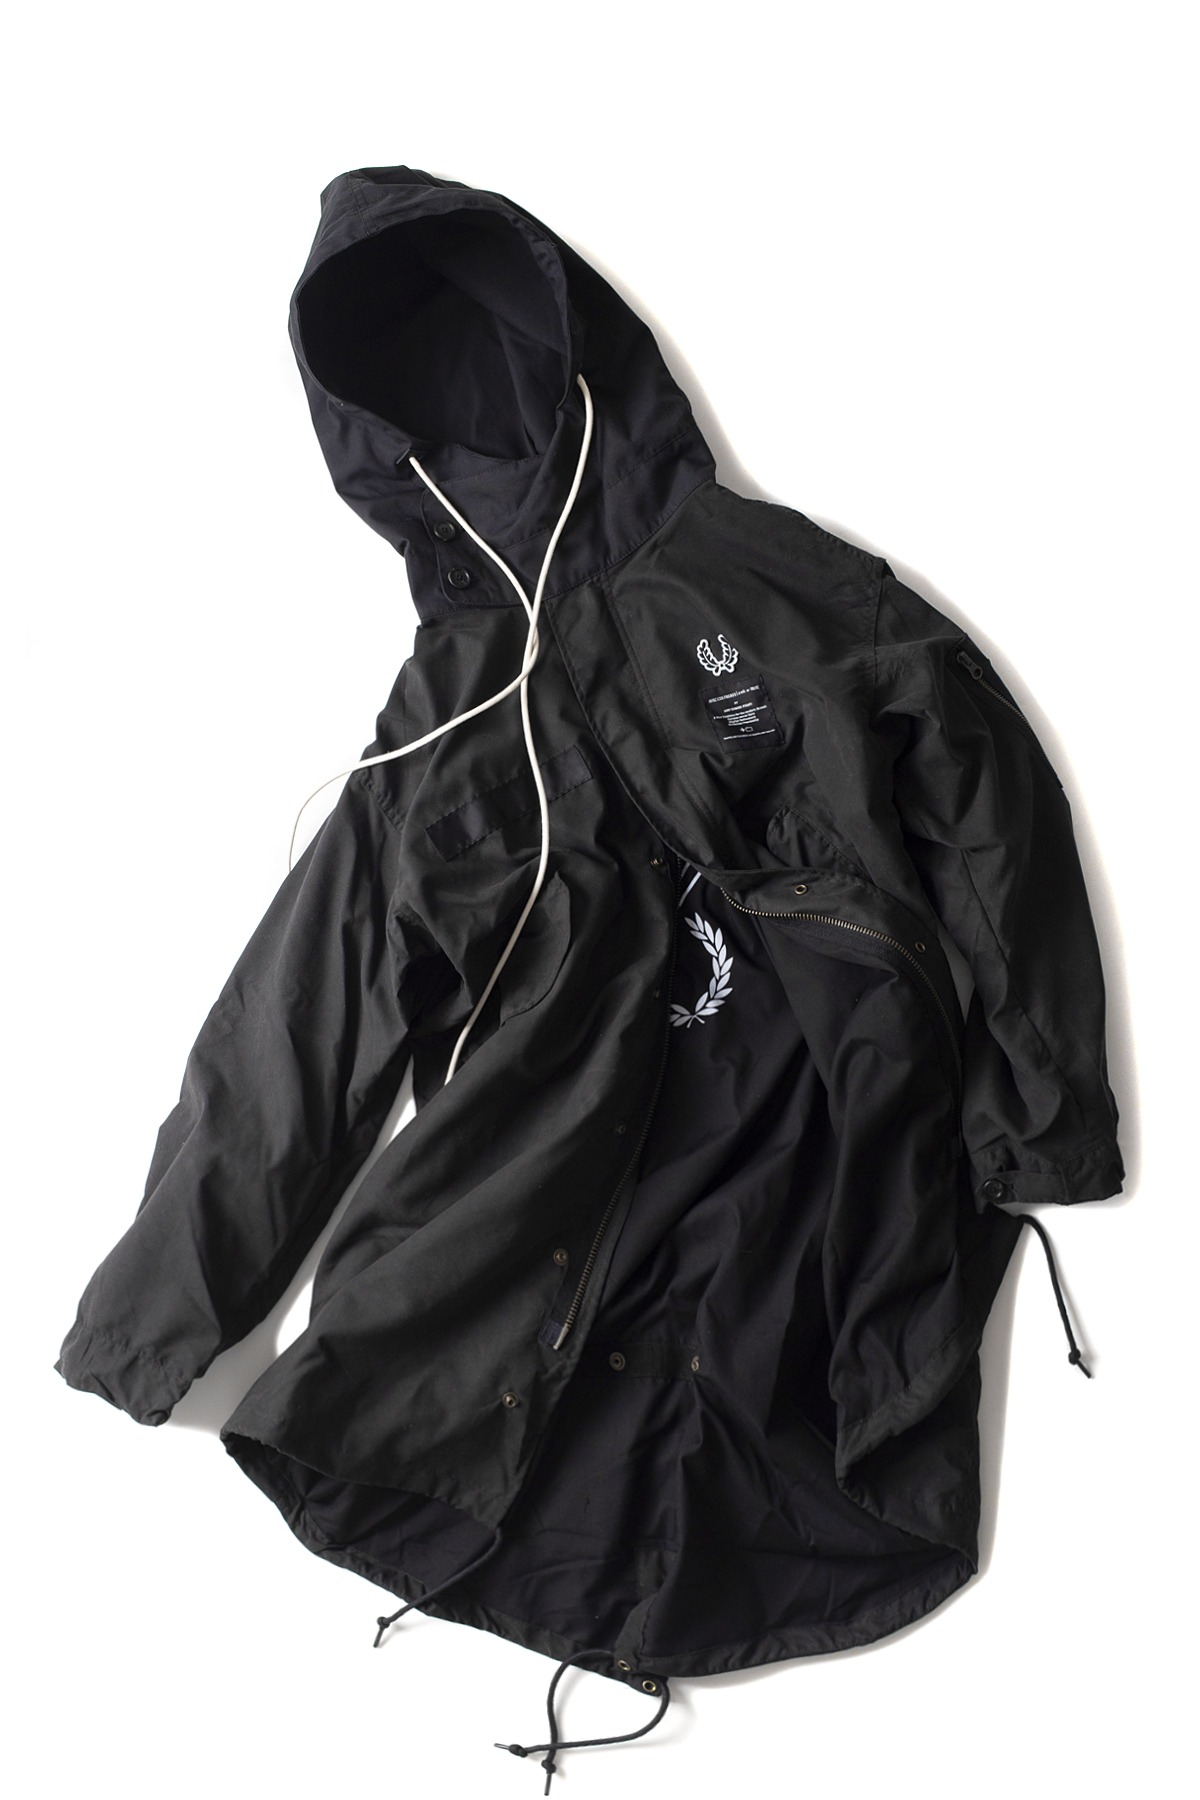 FRED PERRY : Printed Parka (Black)